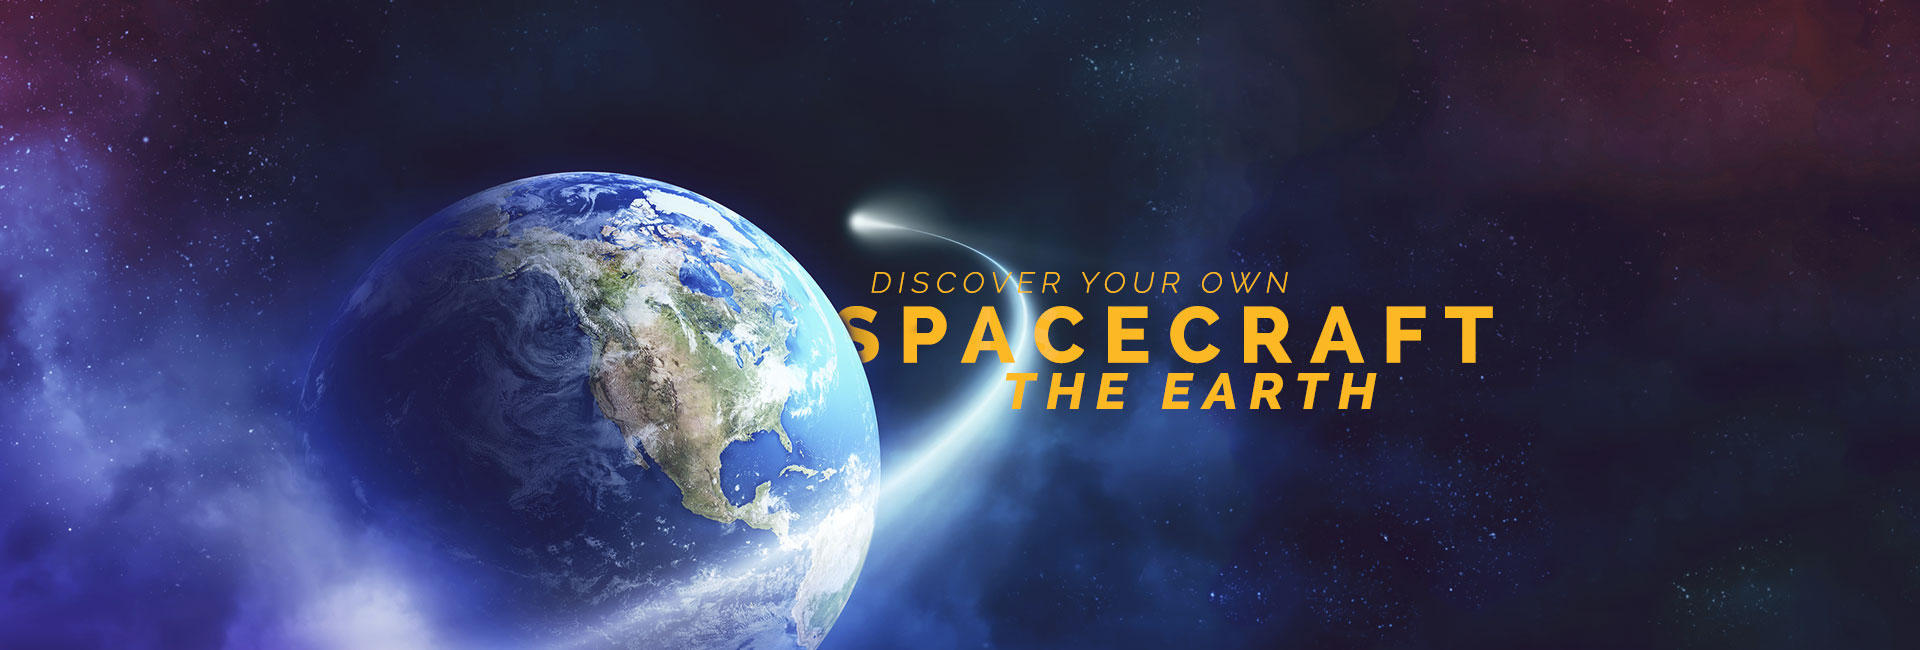 Climb aboard the vessel that is Earth